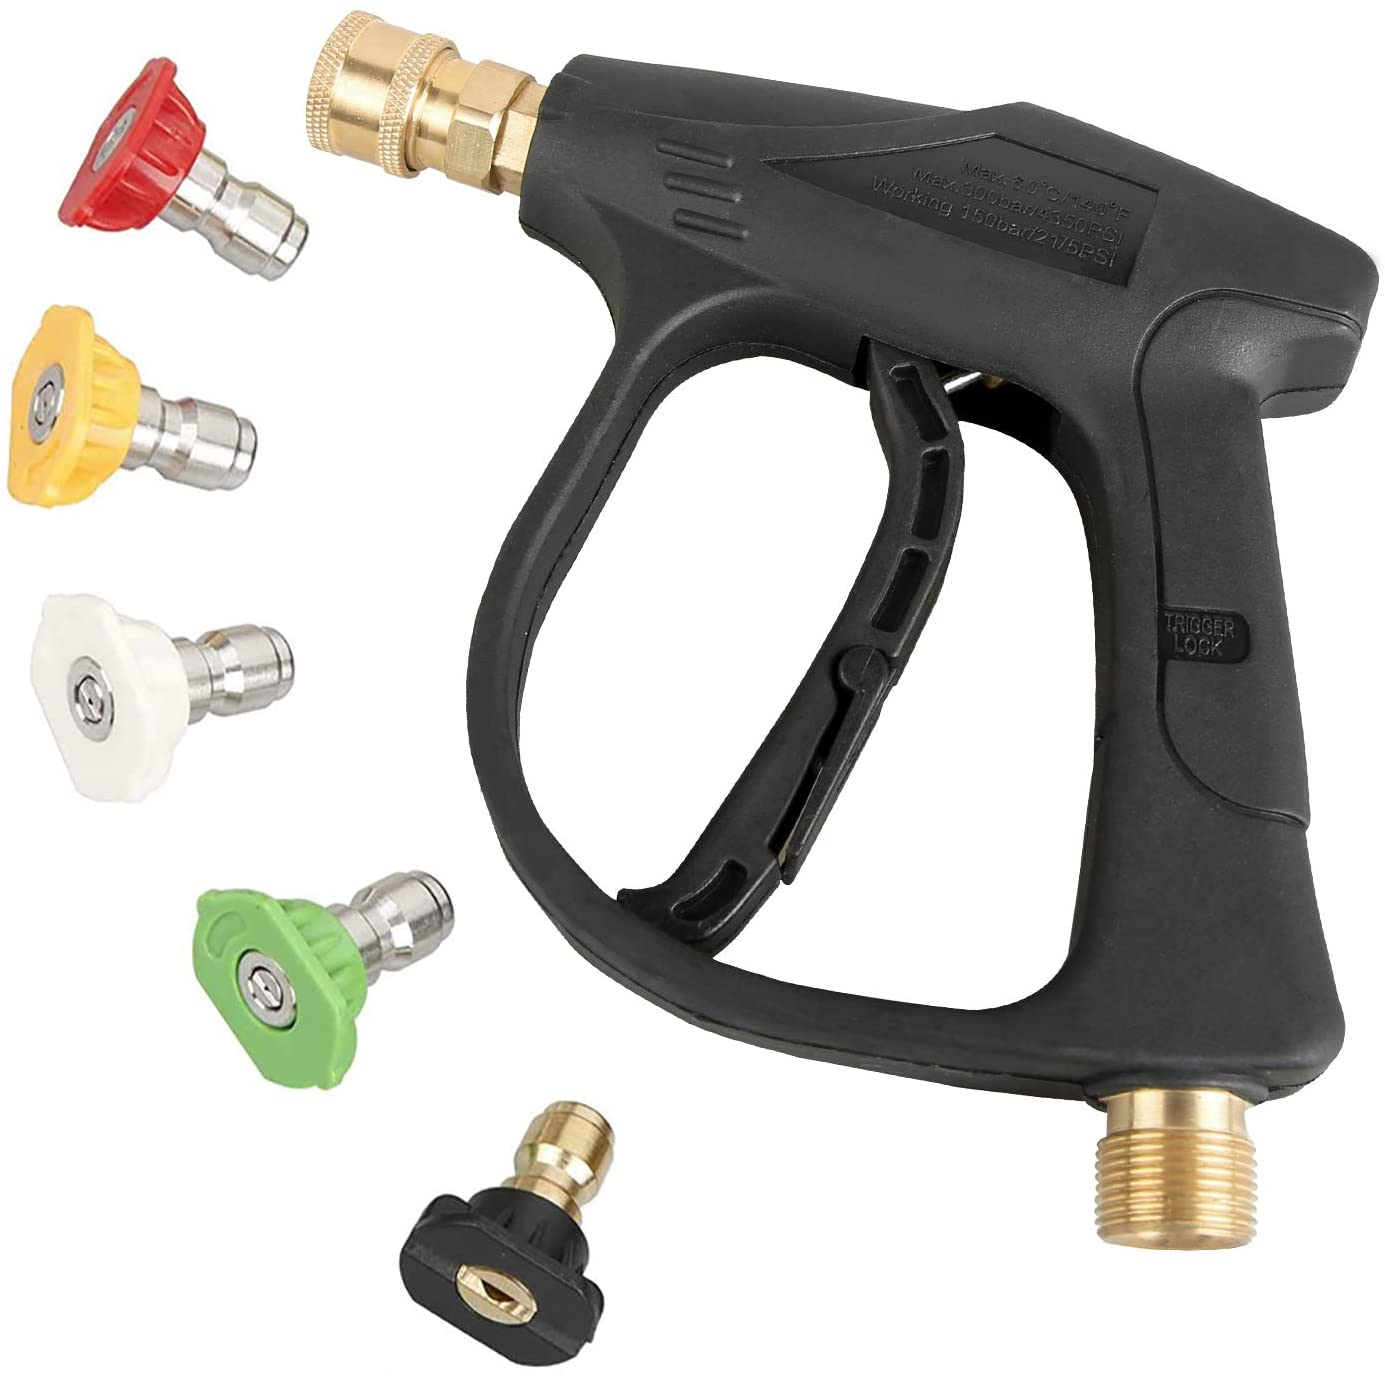 Sooprinse Quick Connect High Pressure Power Washer Attachment For Garden Hose